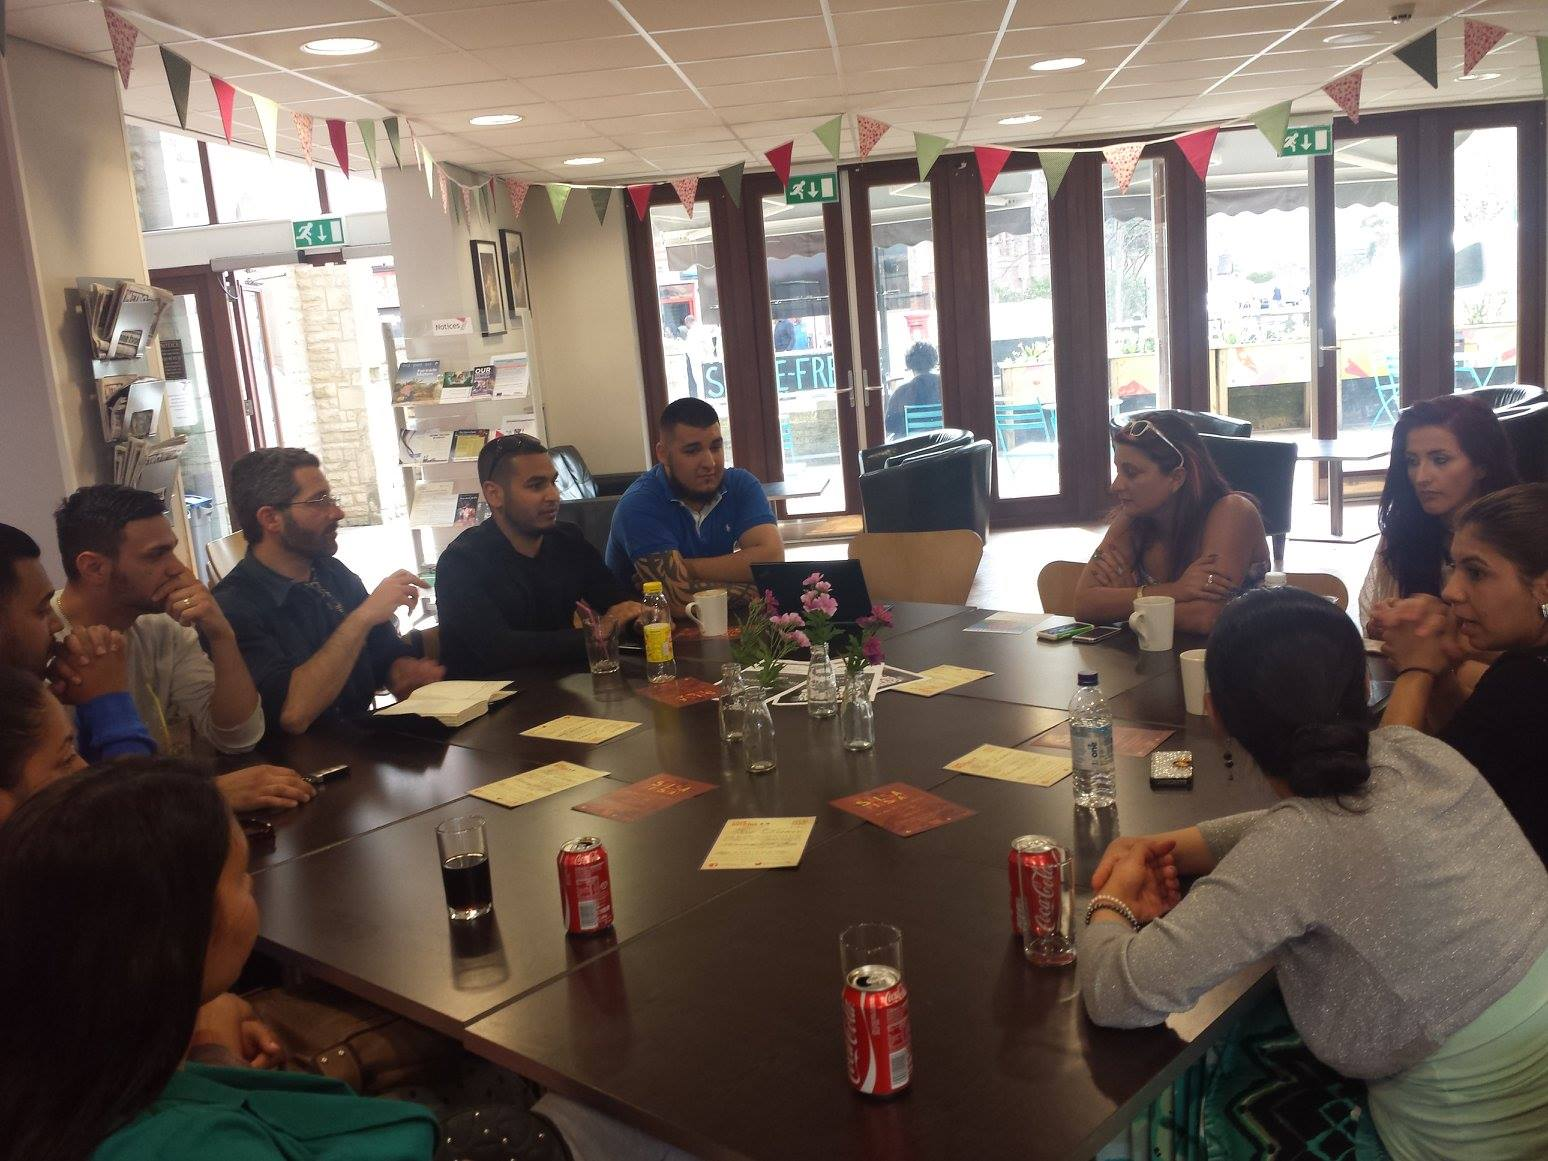 Roma participation in MigRom project